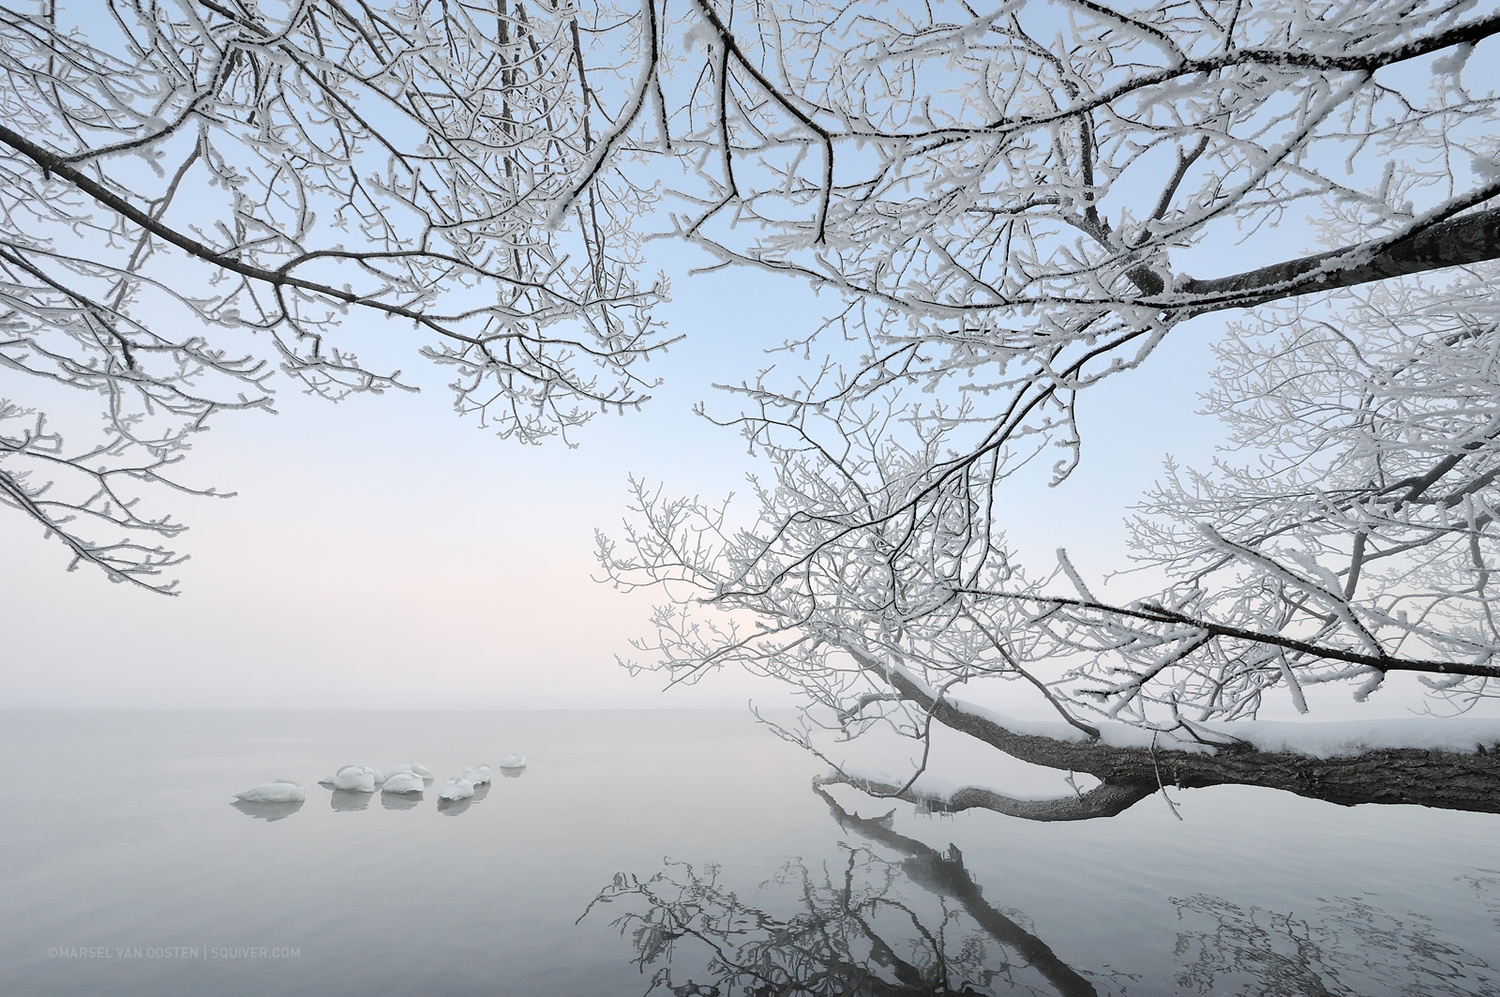 White Silence by Marsel van Oosten